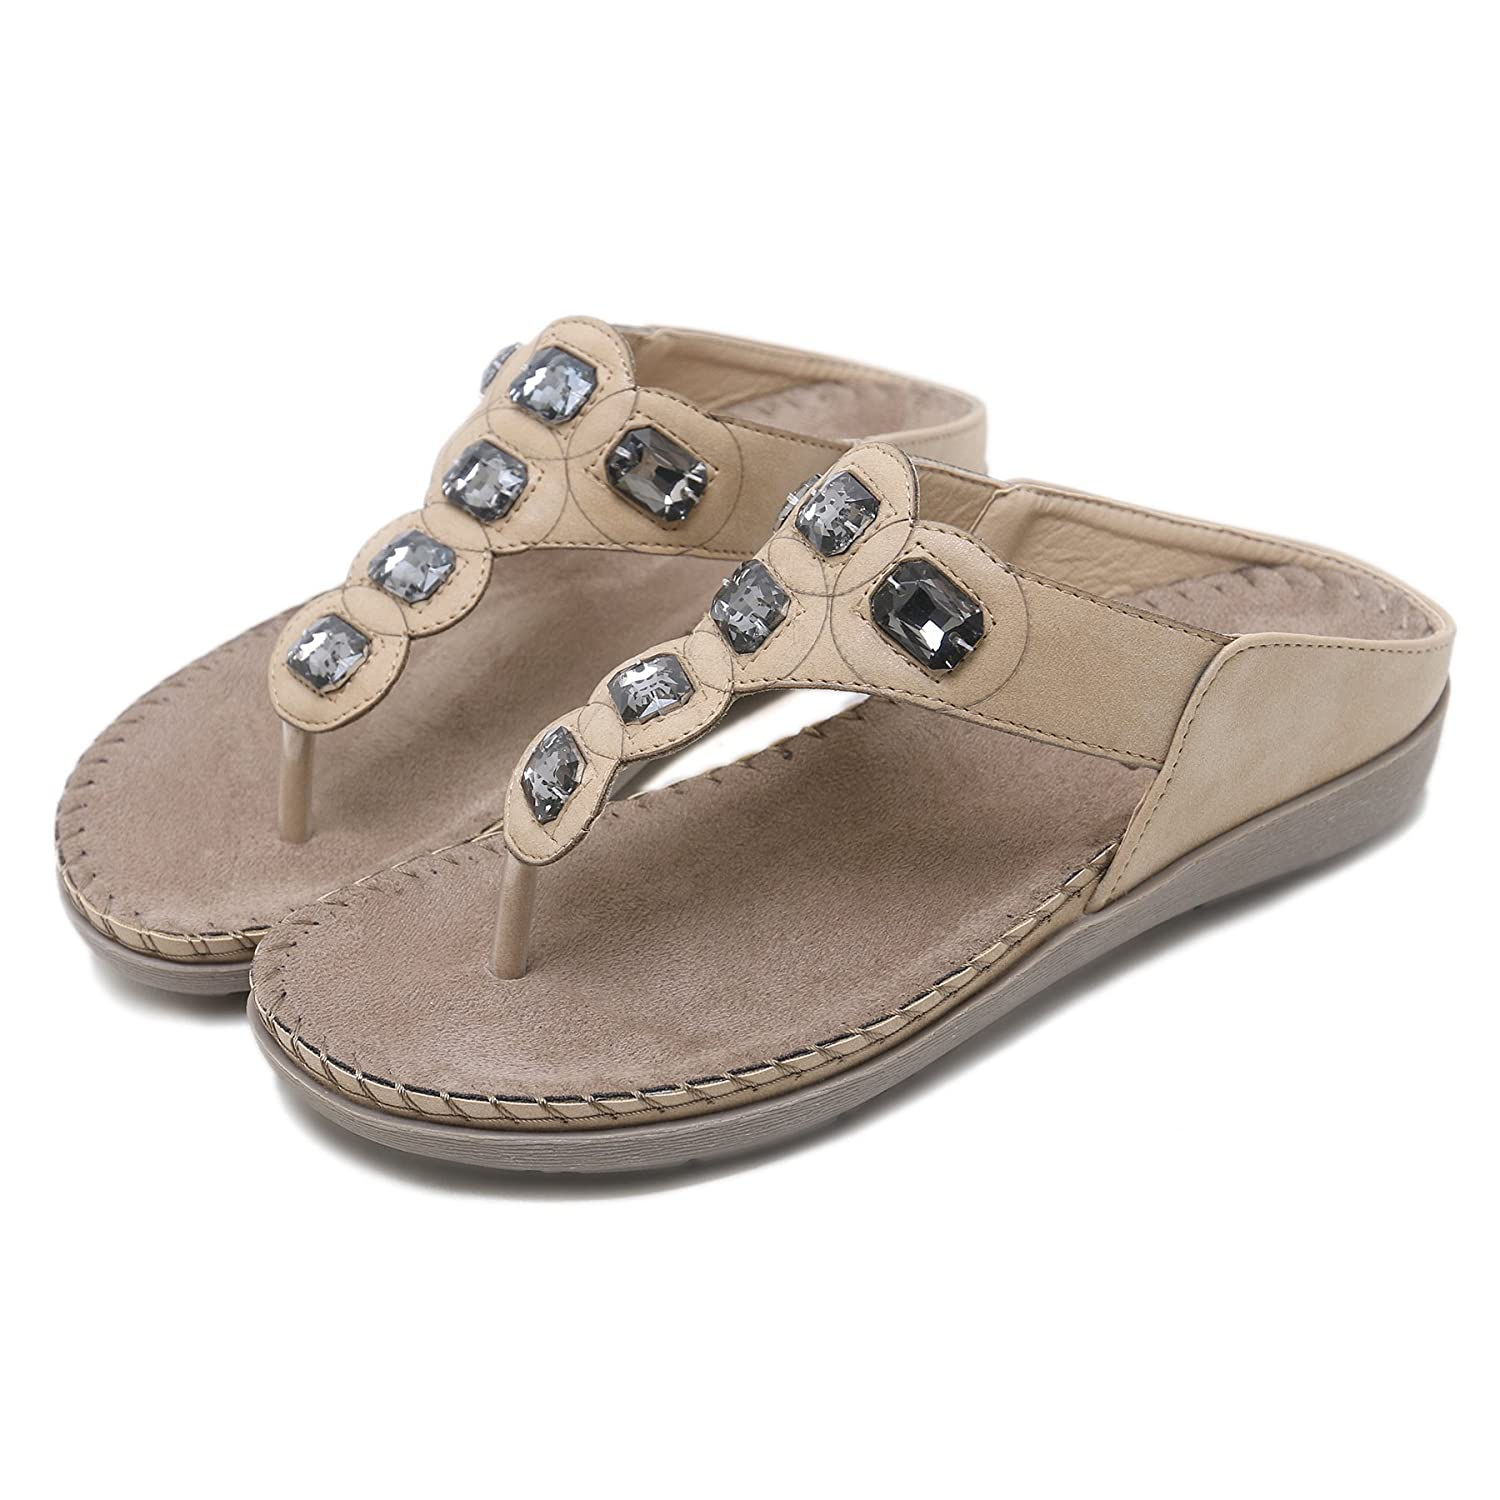 APTRO Womens Flip Flops Slippers Toe Post Flat Sandals Summer Post Thong Low Wedge Ergonomic Beach Shoe with Crystal